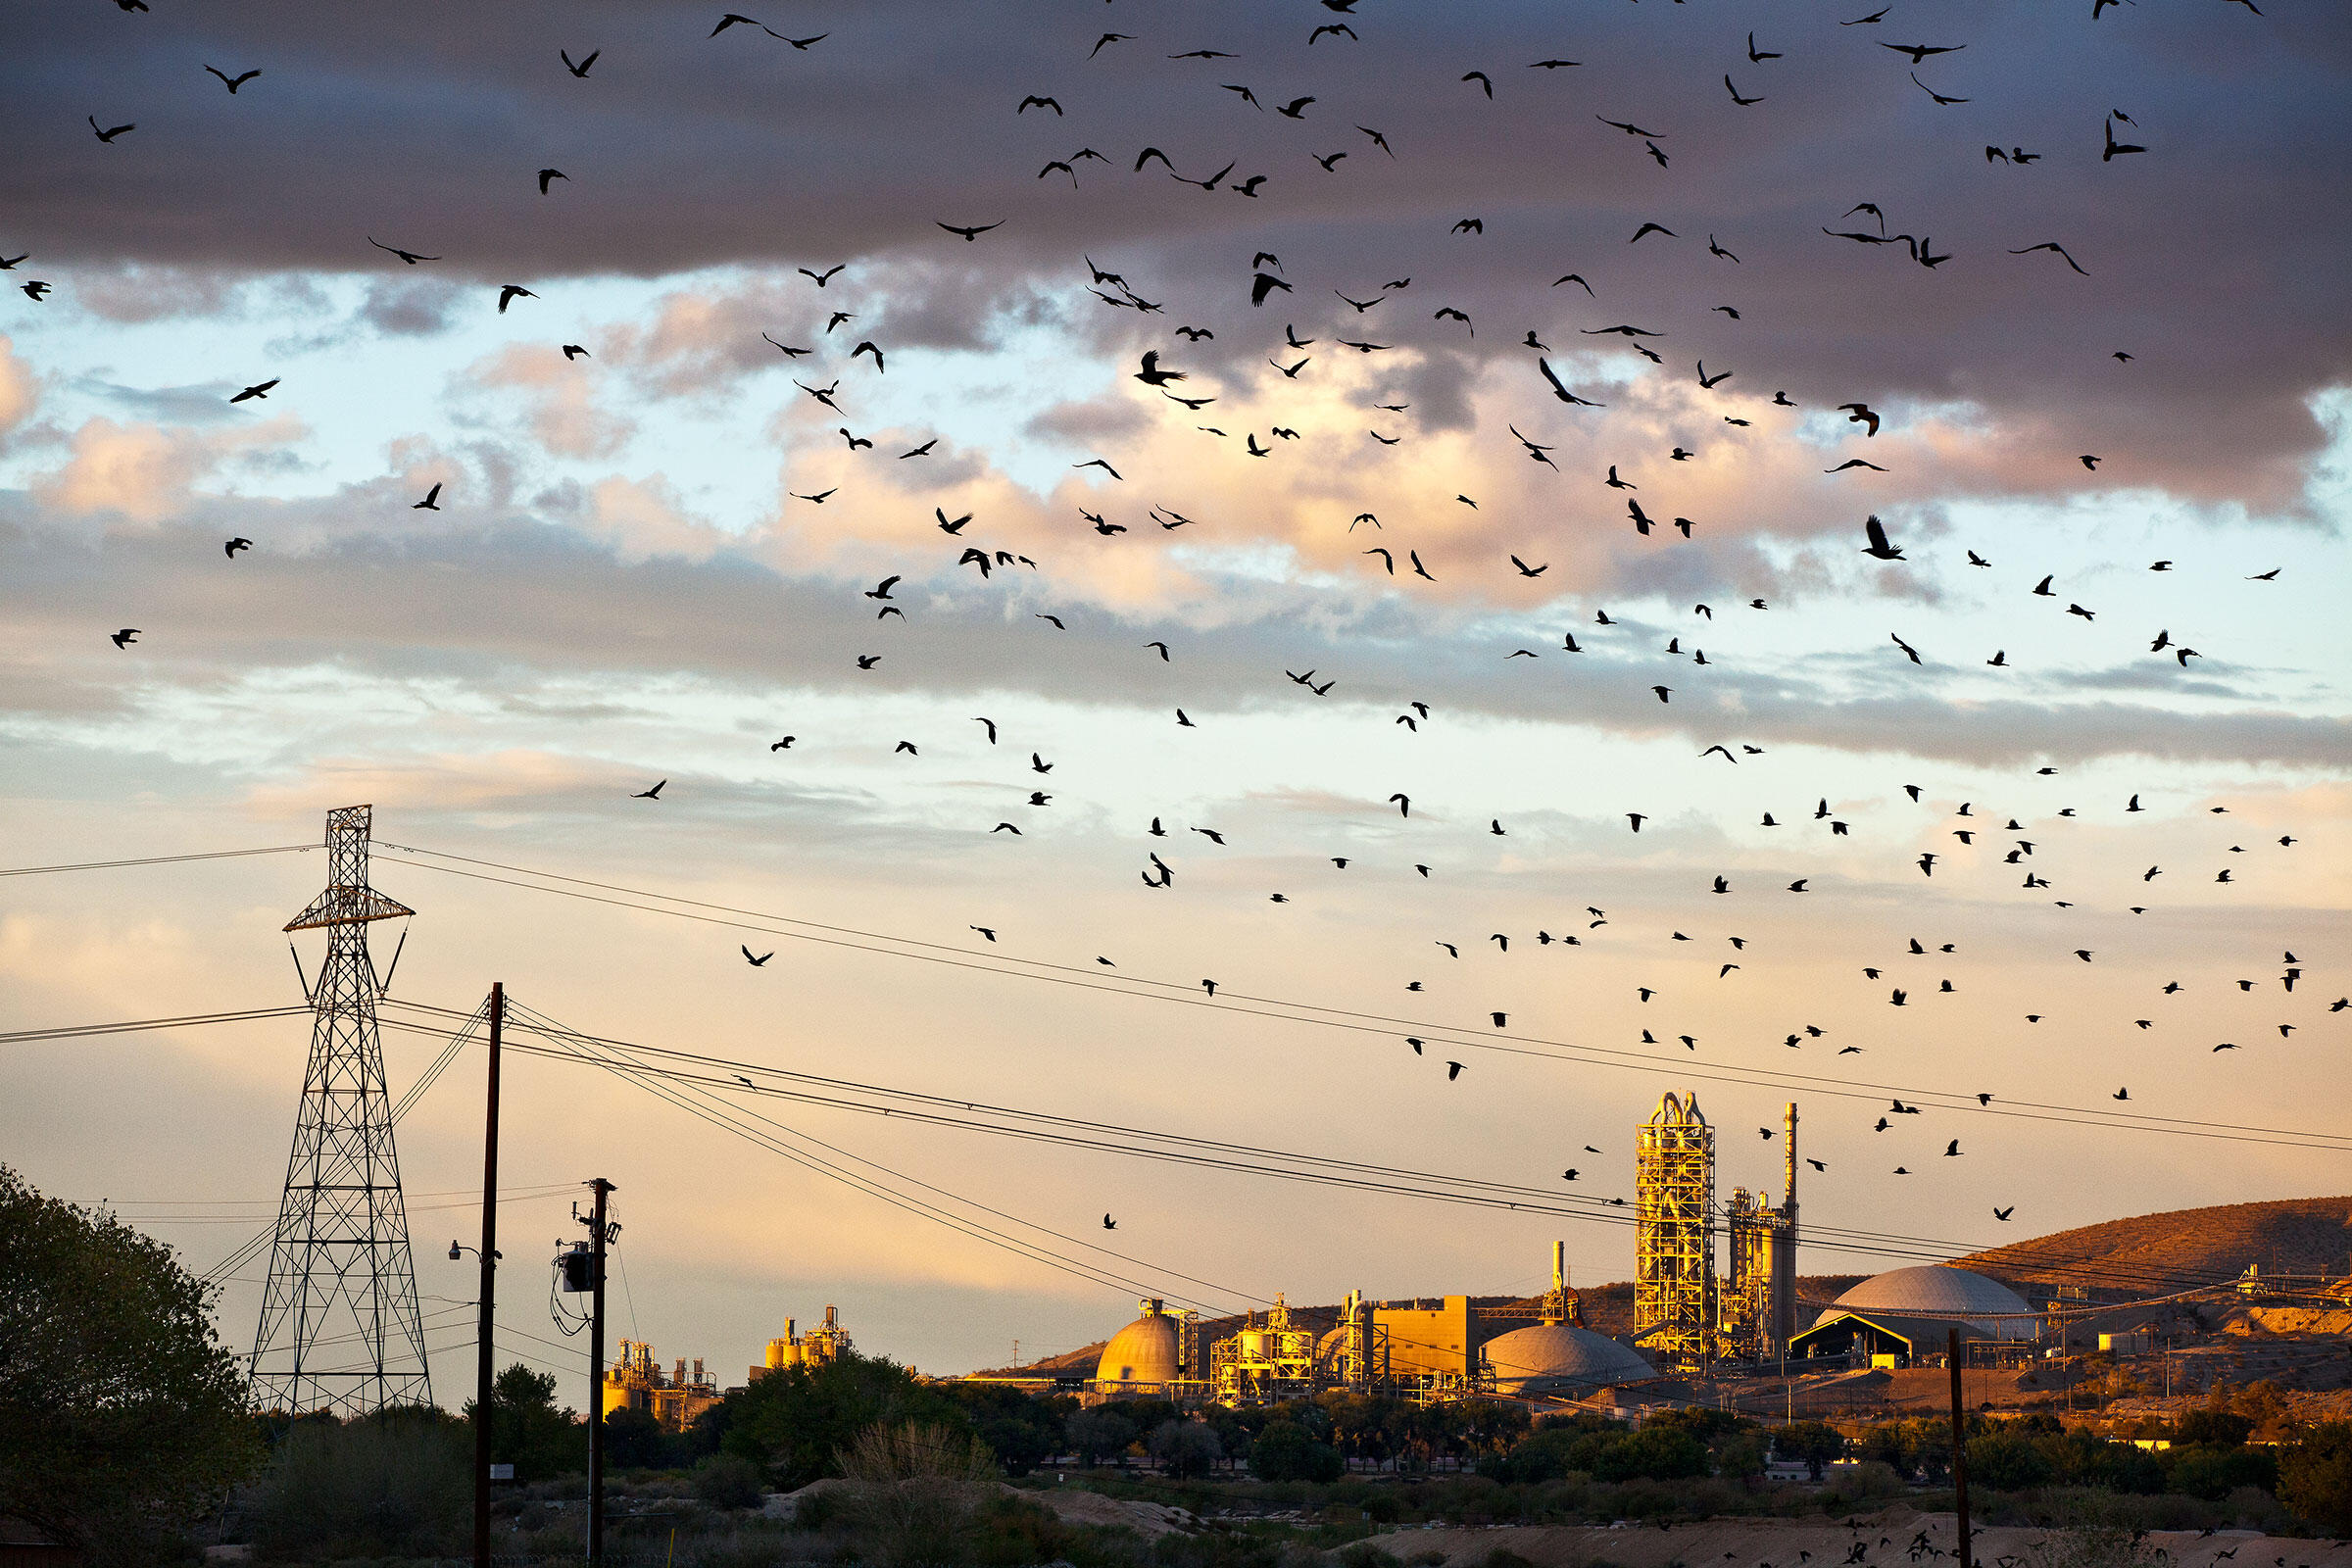 Ravens take flight after being dosed by the XADS laser. Only a few shots, aimed at a few birds, were required to clear this massive, 4,000-bird roost at a food-waste composting facility near Victorville, California. Tom Fowlks